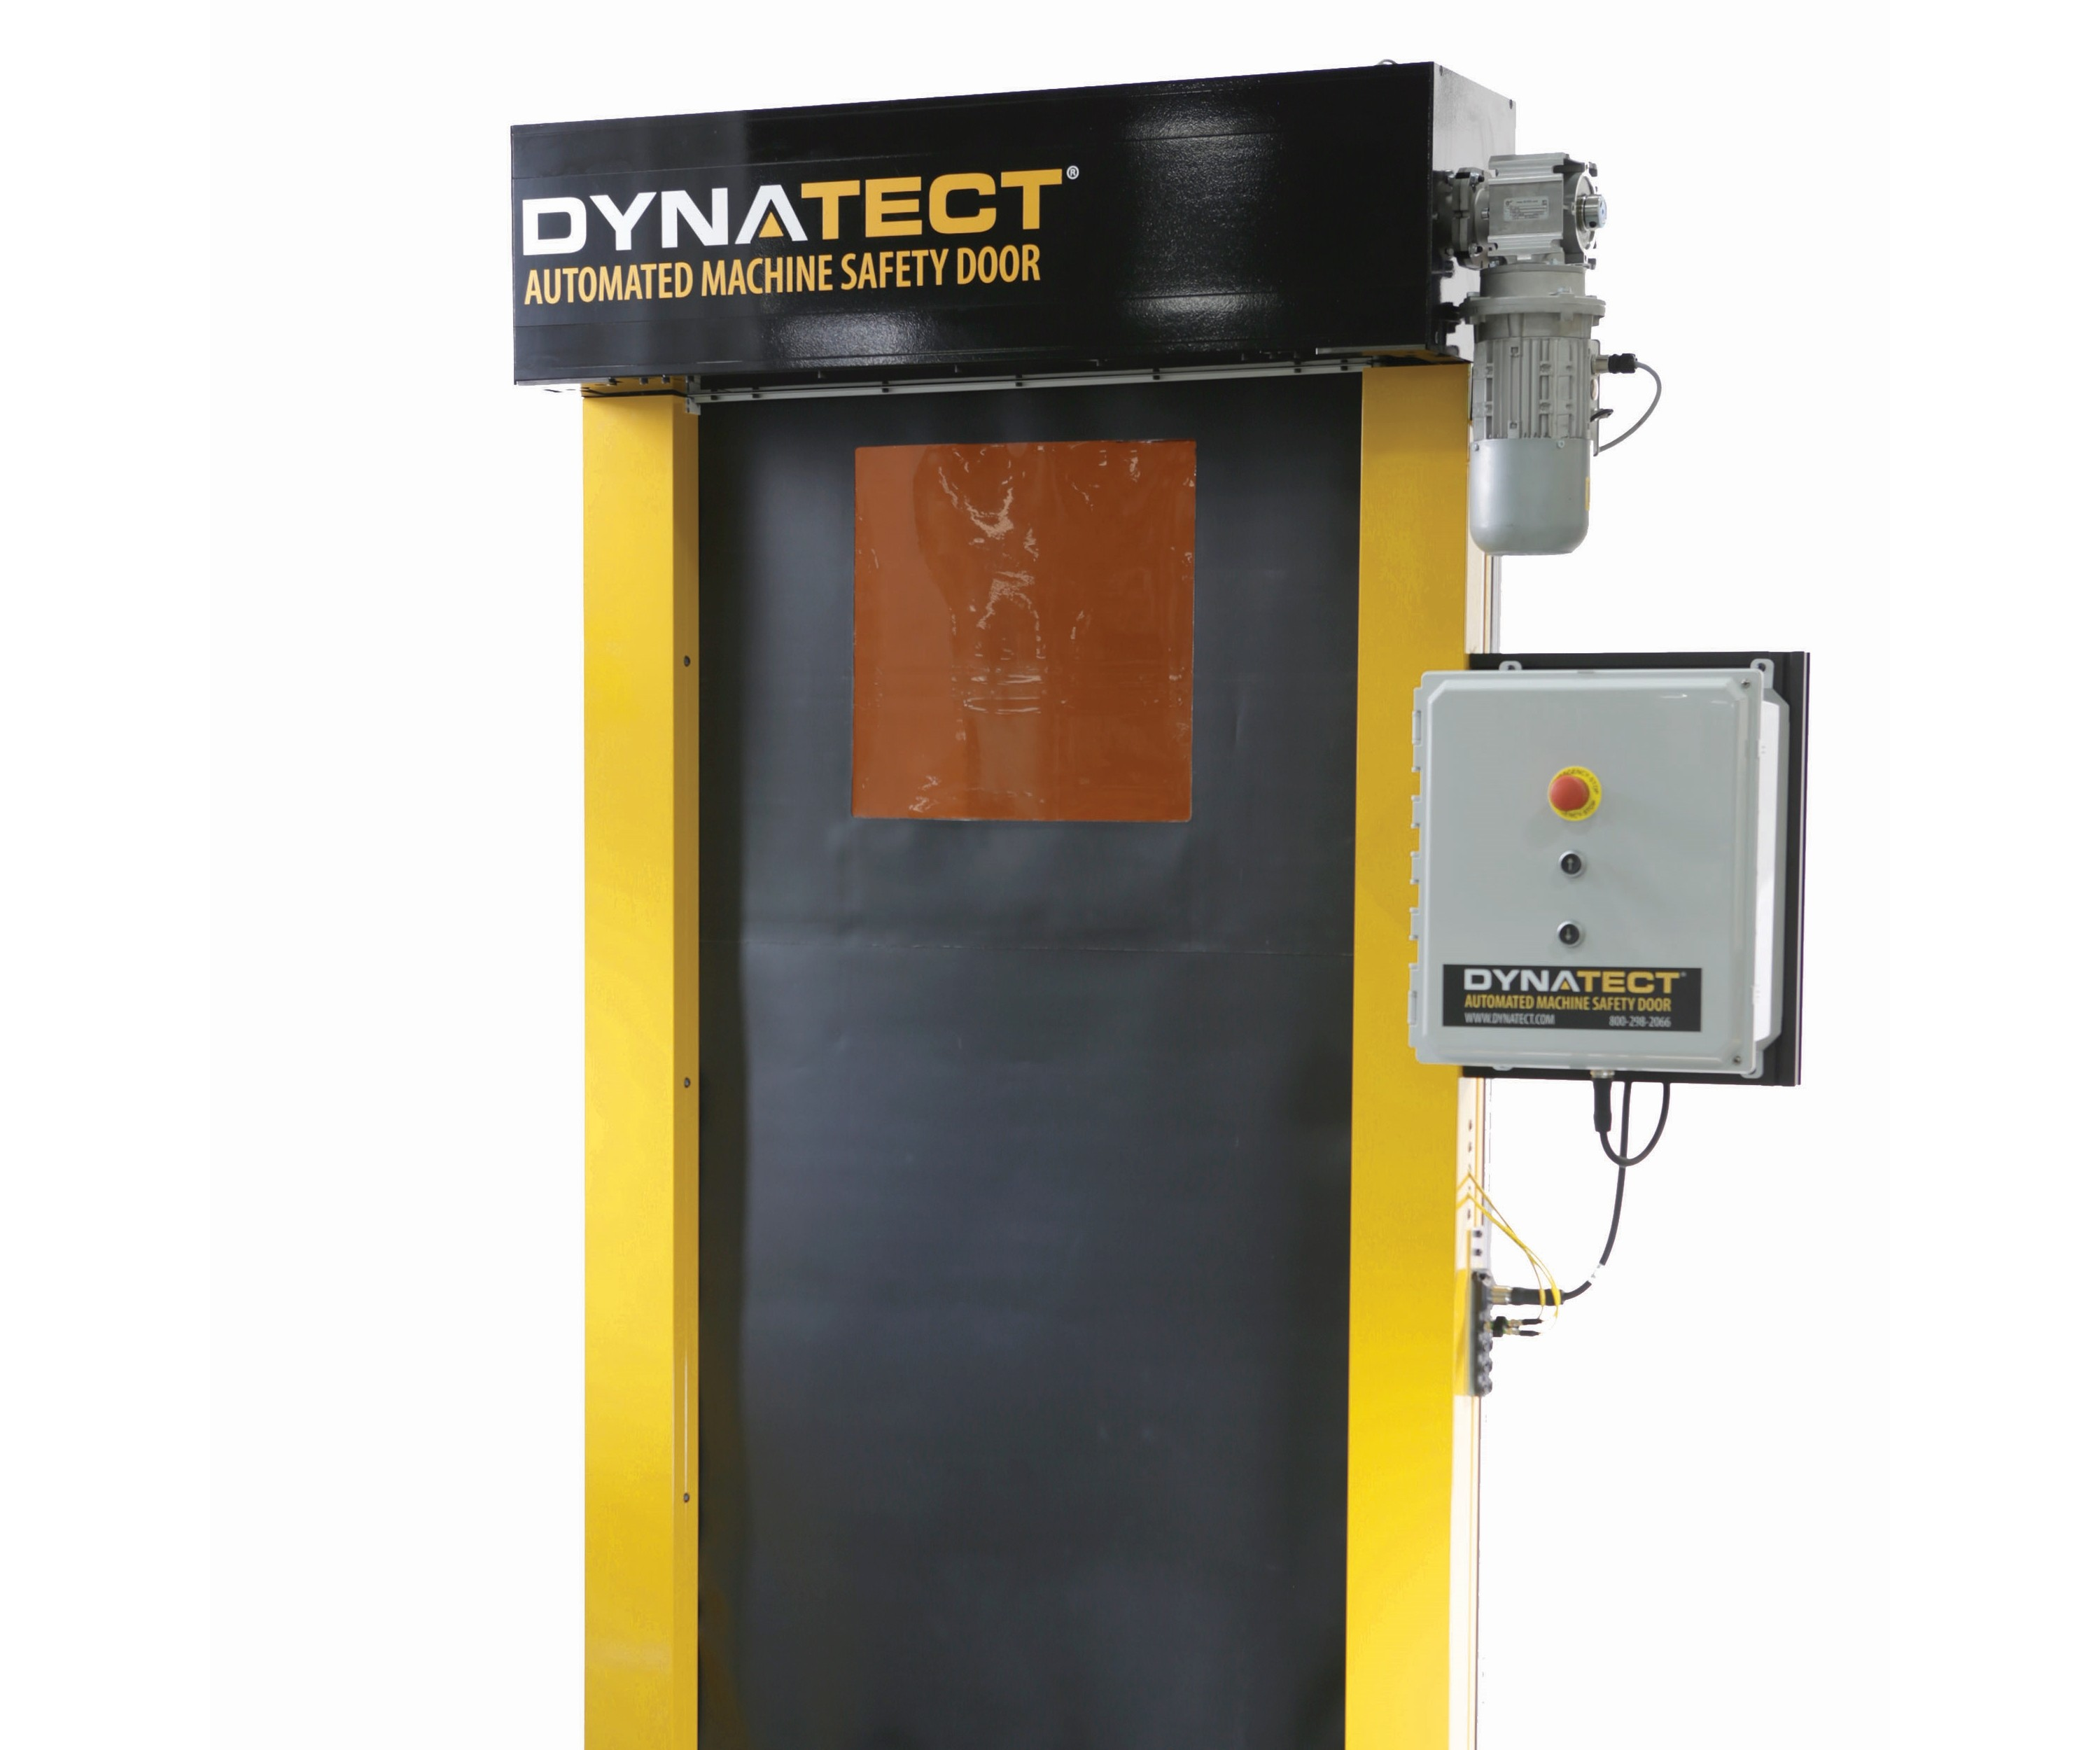 Machine Safety Door Suitable for Automated Processes